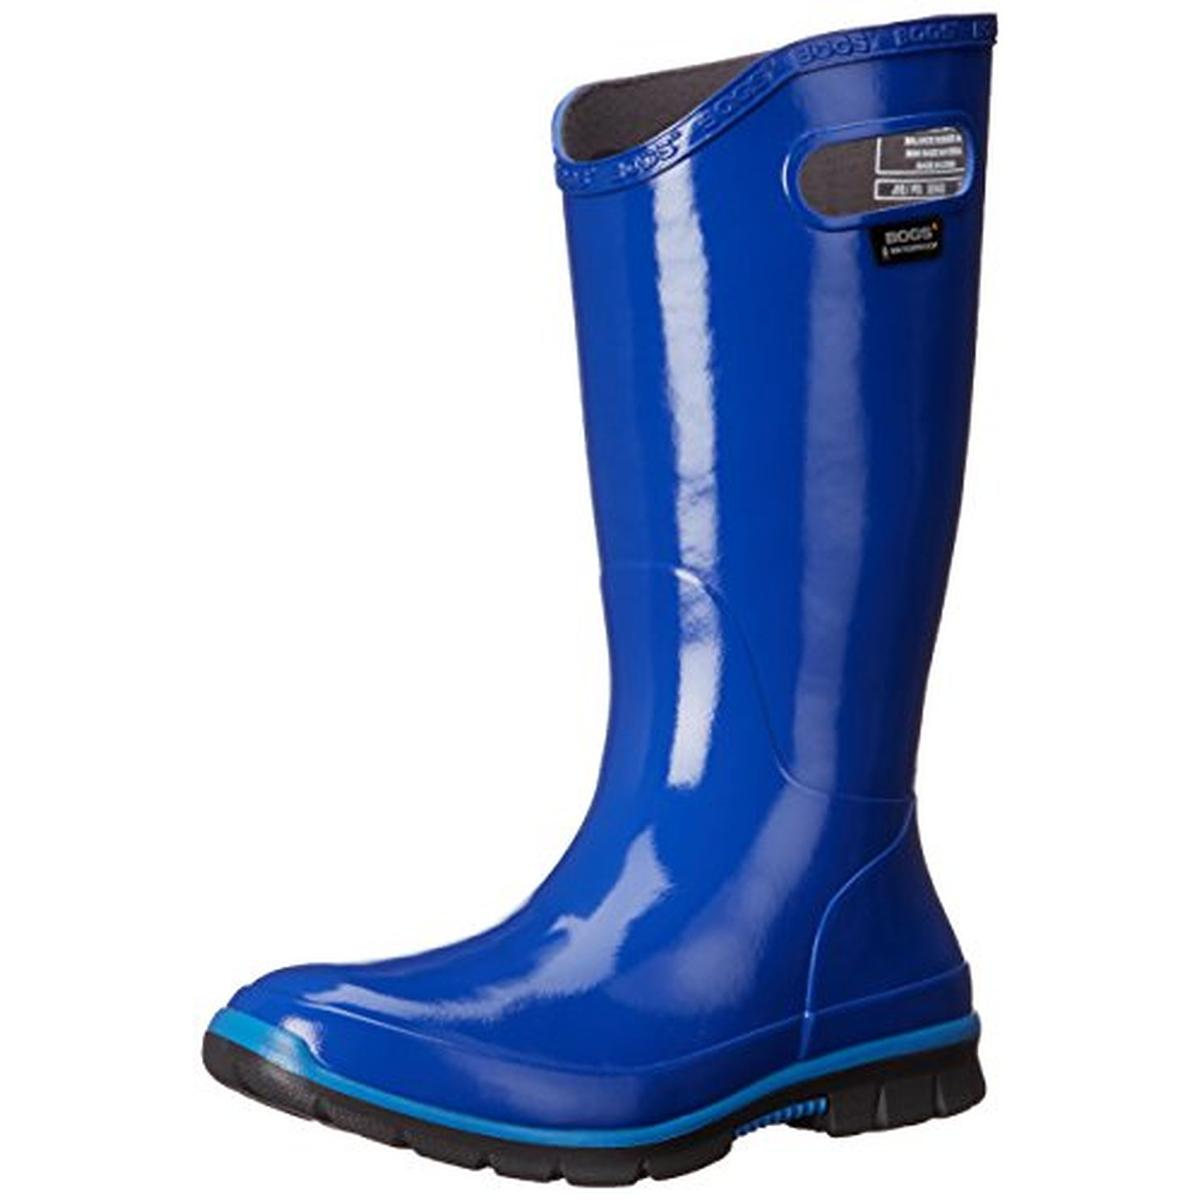 Awesome Bogs Classic Garden Mid Rain Boot  Women39s  Backcountrycom